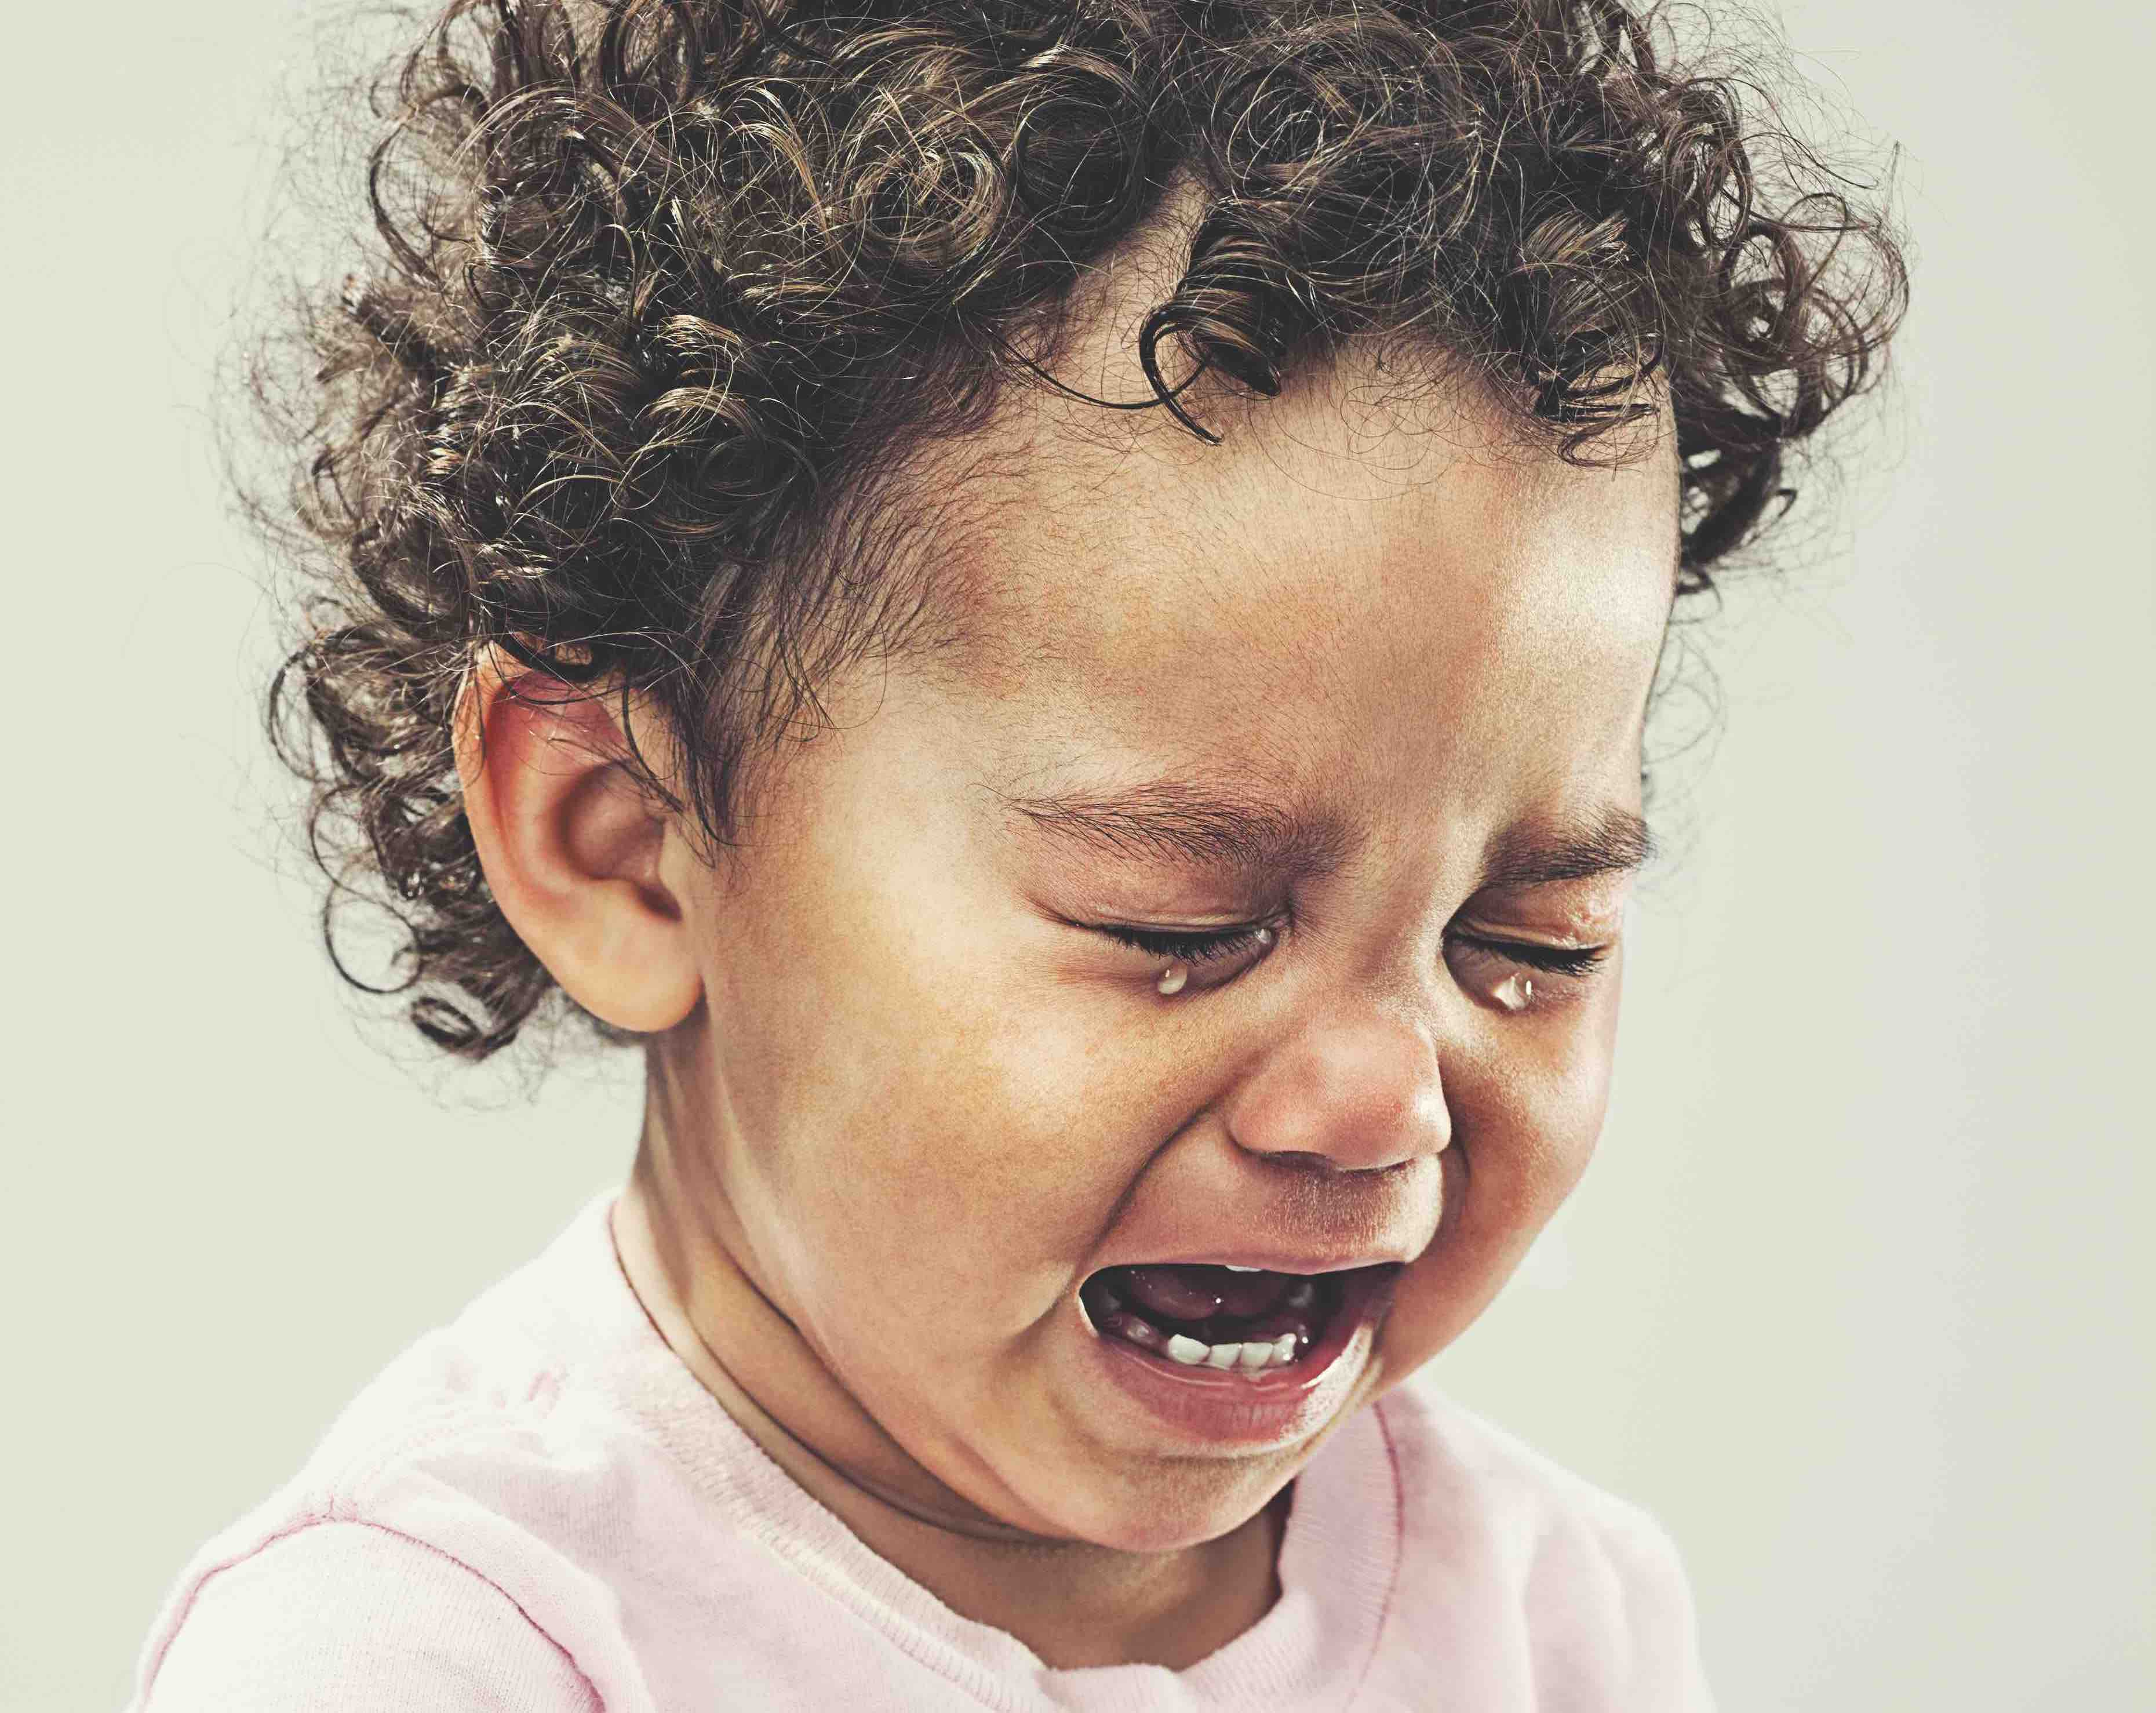 child crying during a goodbye